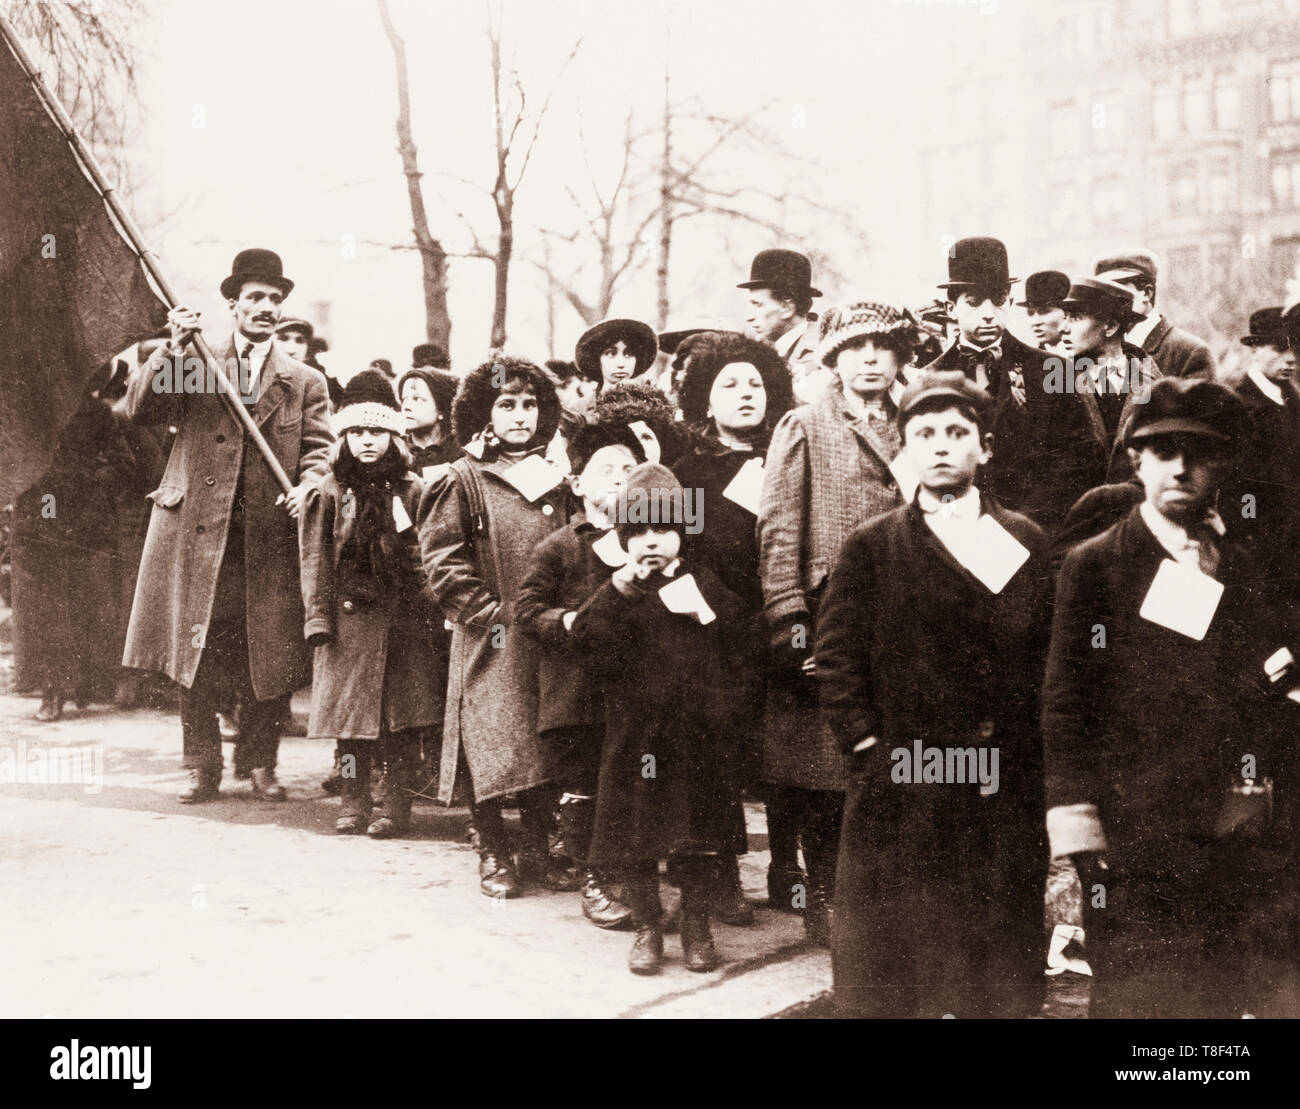 Children of Lawrence, Massachusetts strikers sent to live with sympathizers in New York City during the work stoppage, 1912 - Stock Image